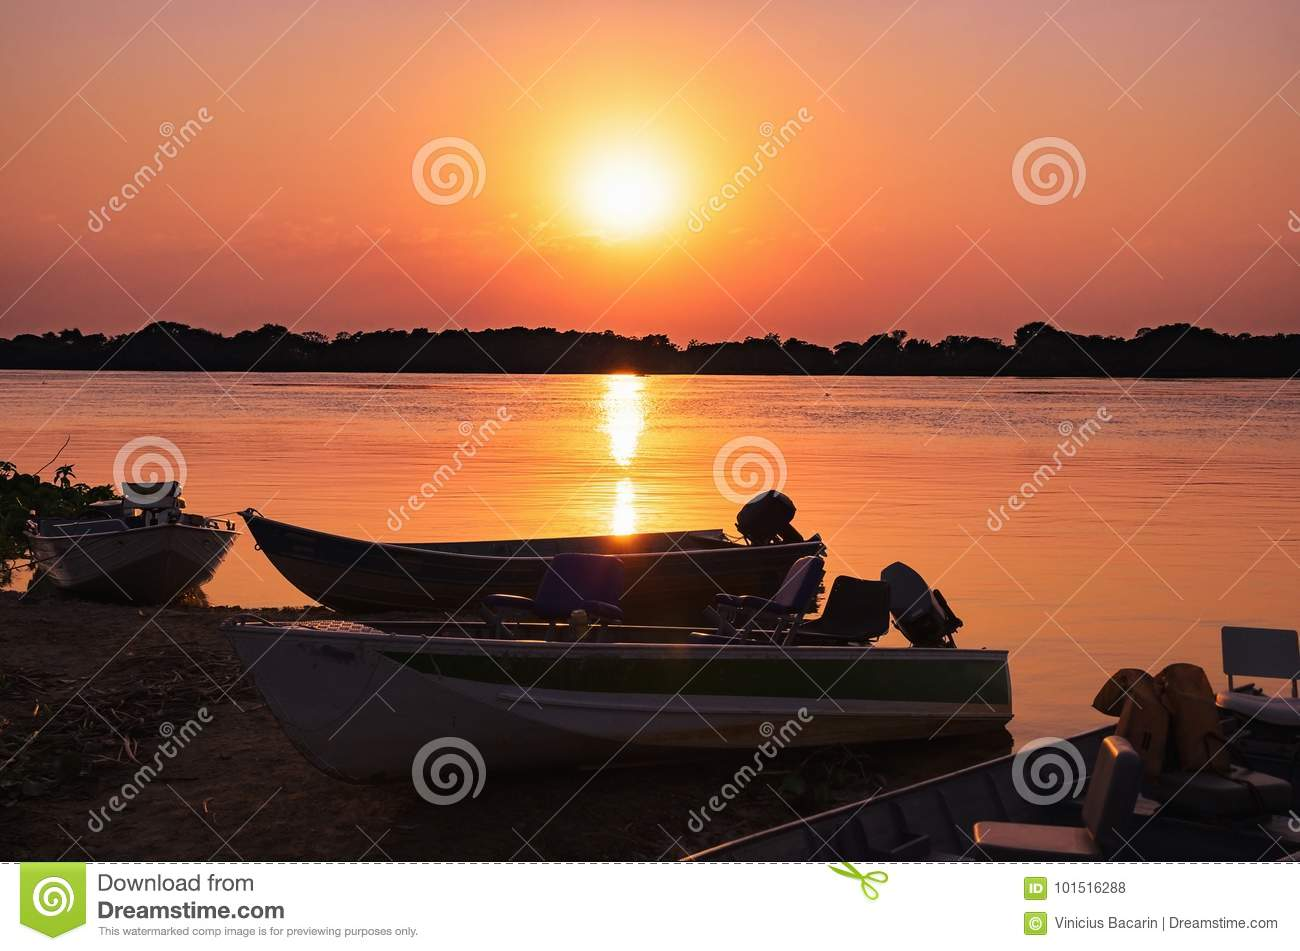 Wonderful landscape of a silhouette of boats on a amazing sunset